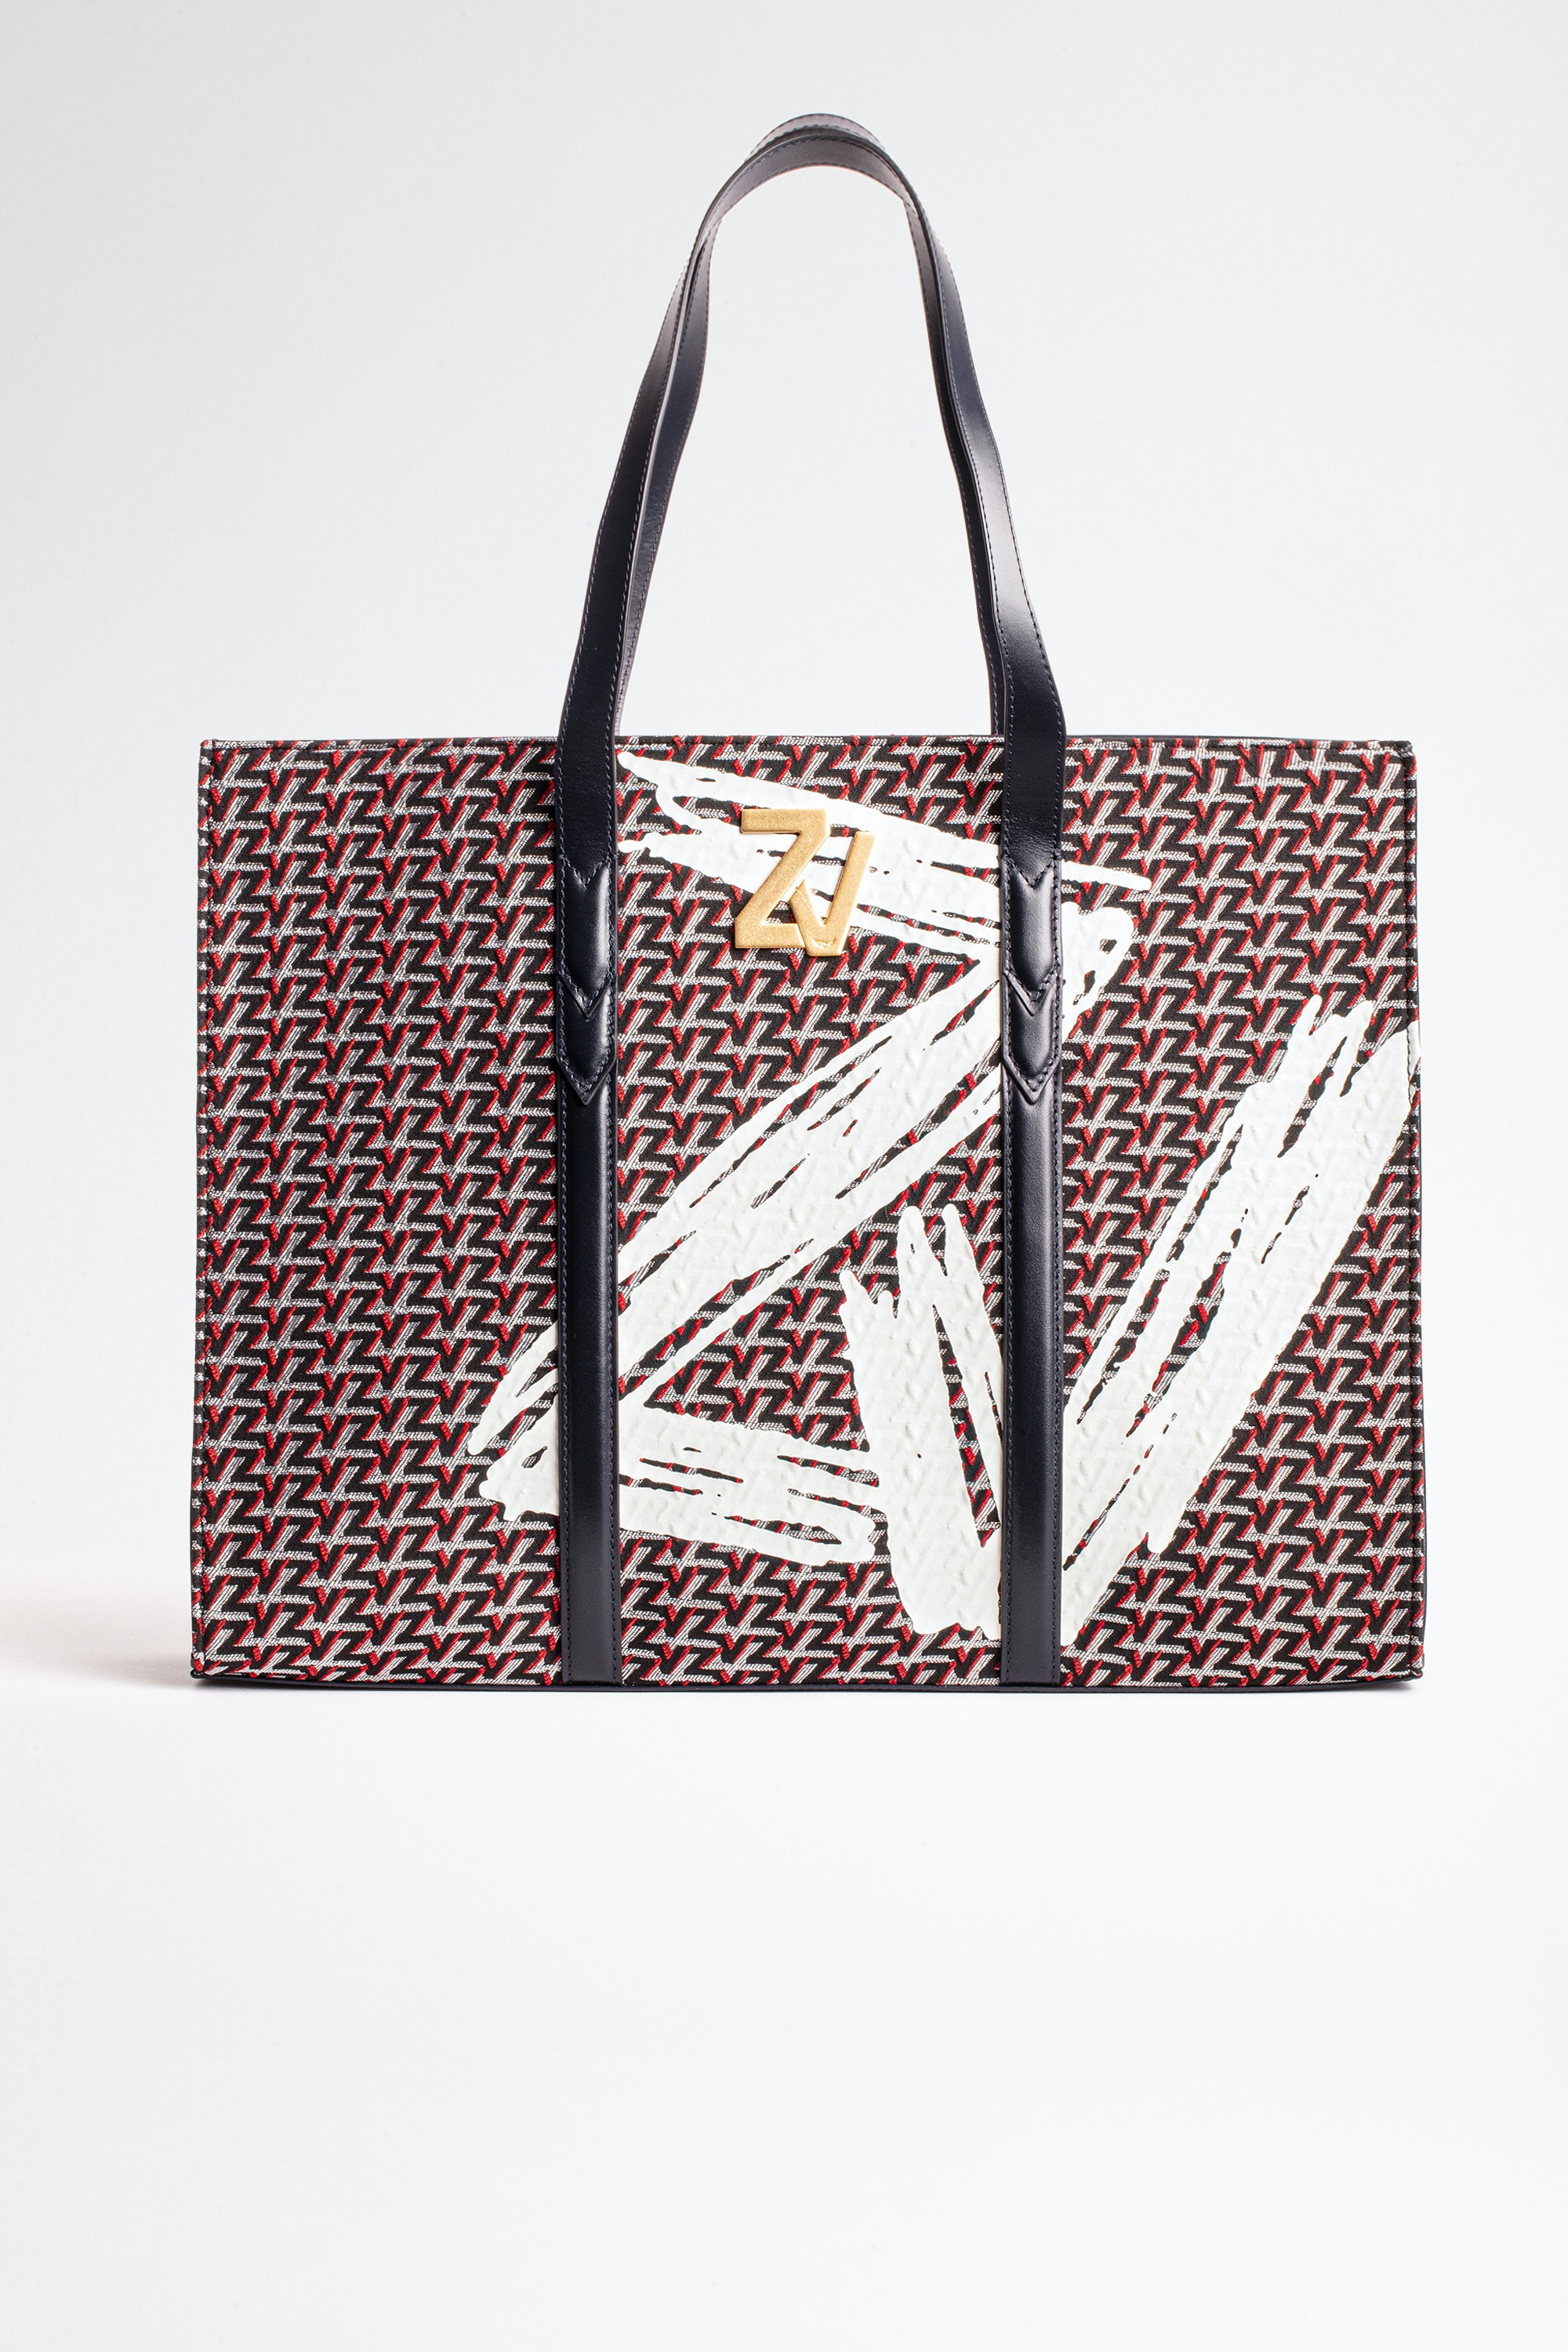 ZV Initial Tote bag Monogram Coat of arms